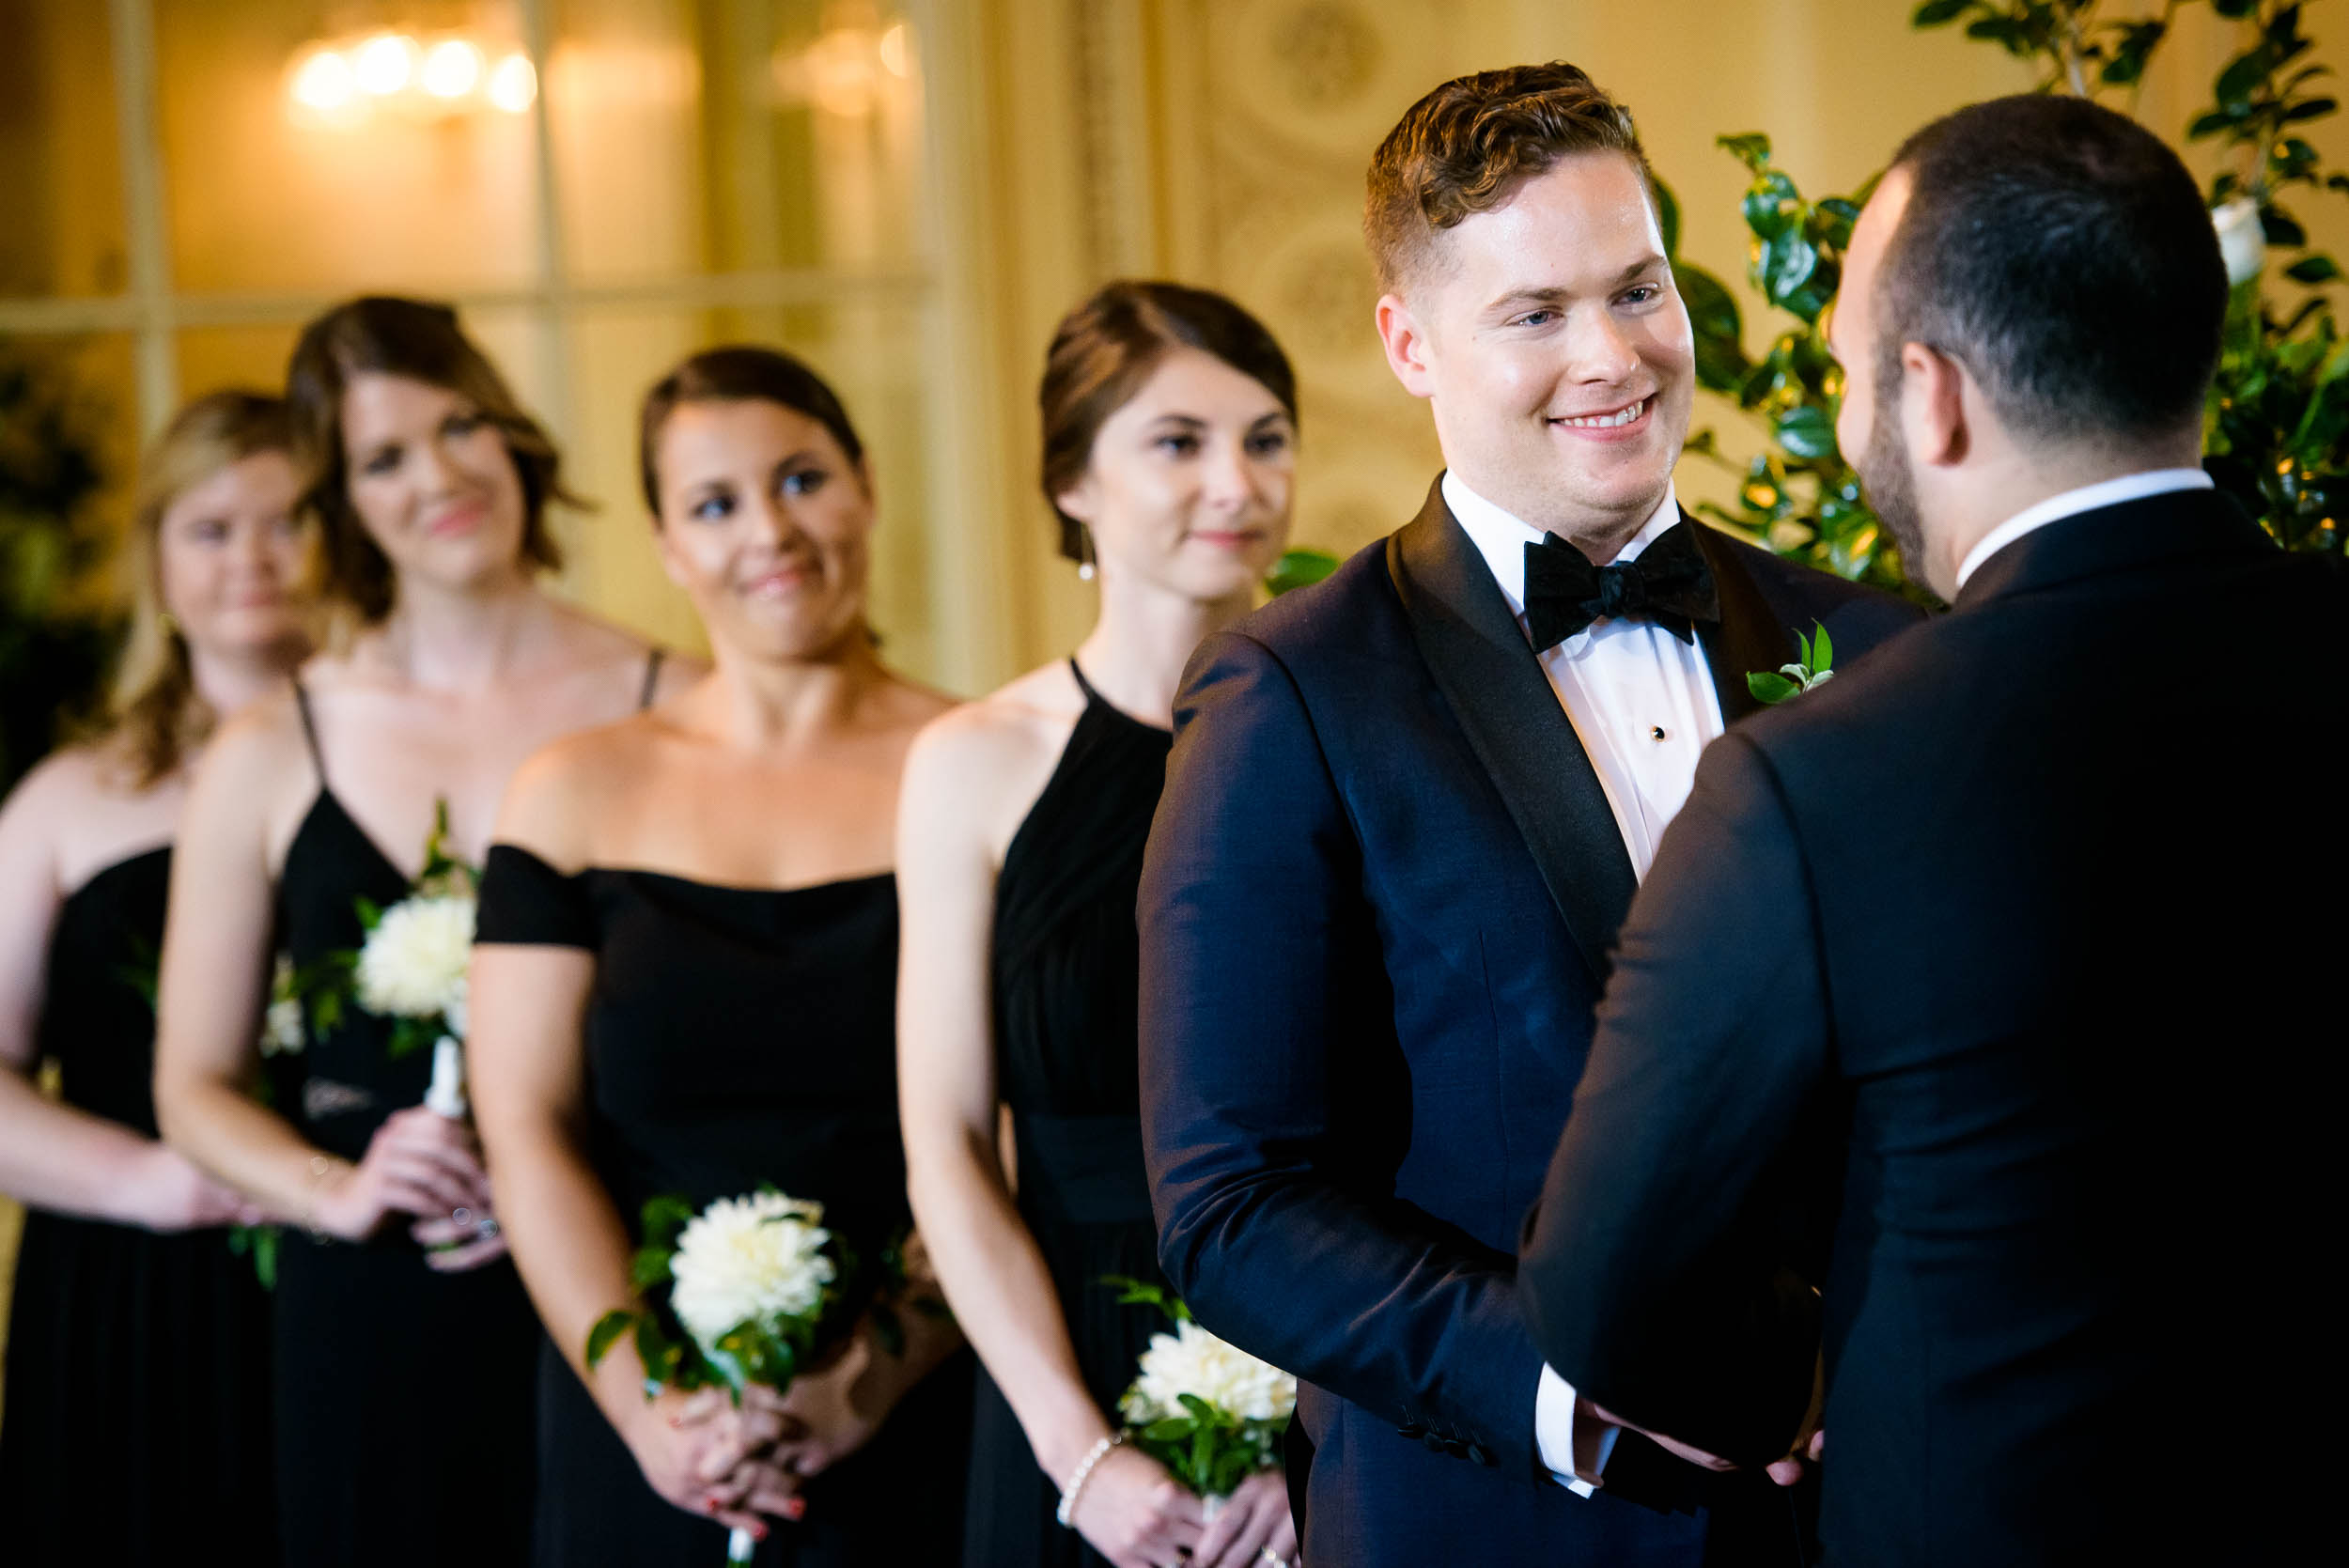 Modern wedding ceremony for luxurious fall wedding at the Chicago Symphony Center captured by J. Brown Photography. See more wedding ideas at jbrownphotography.com!